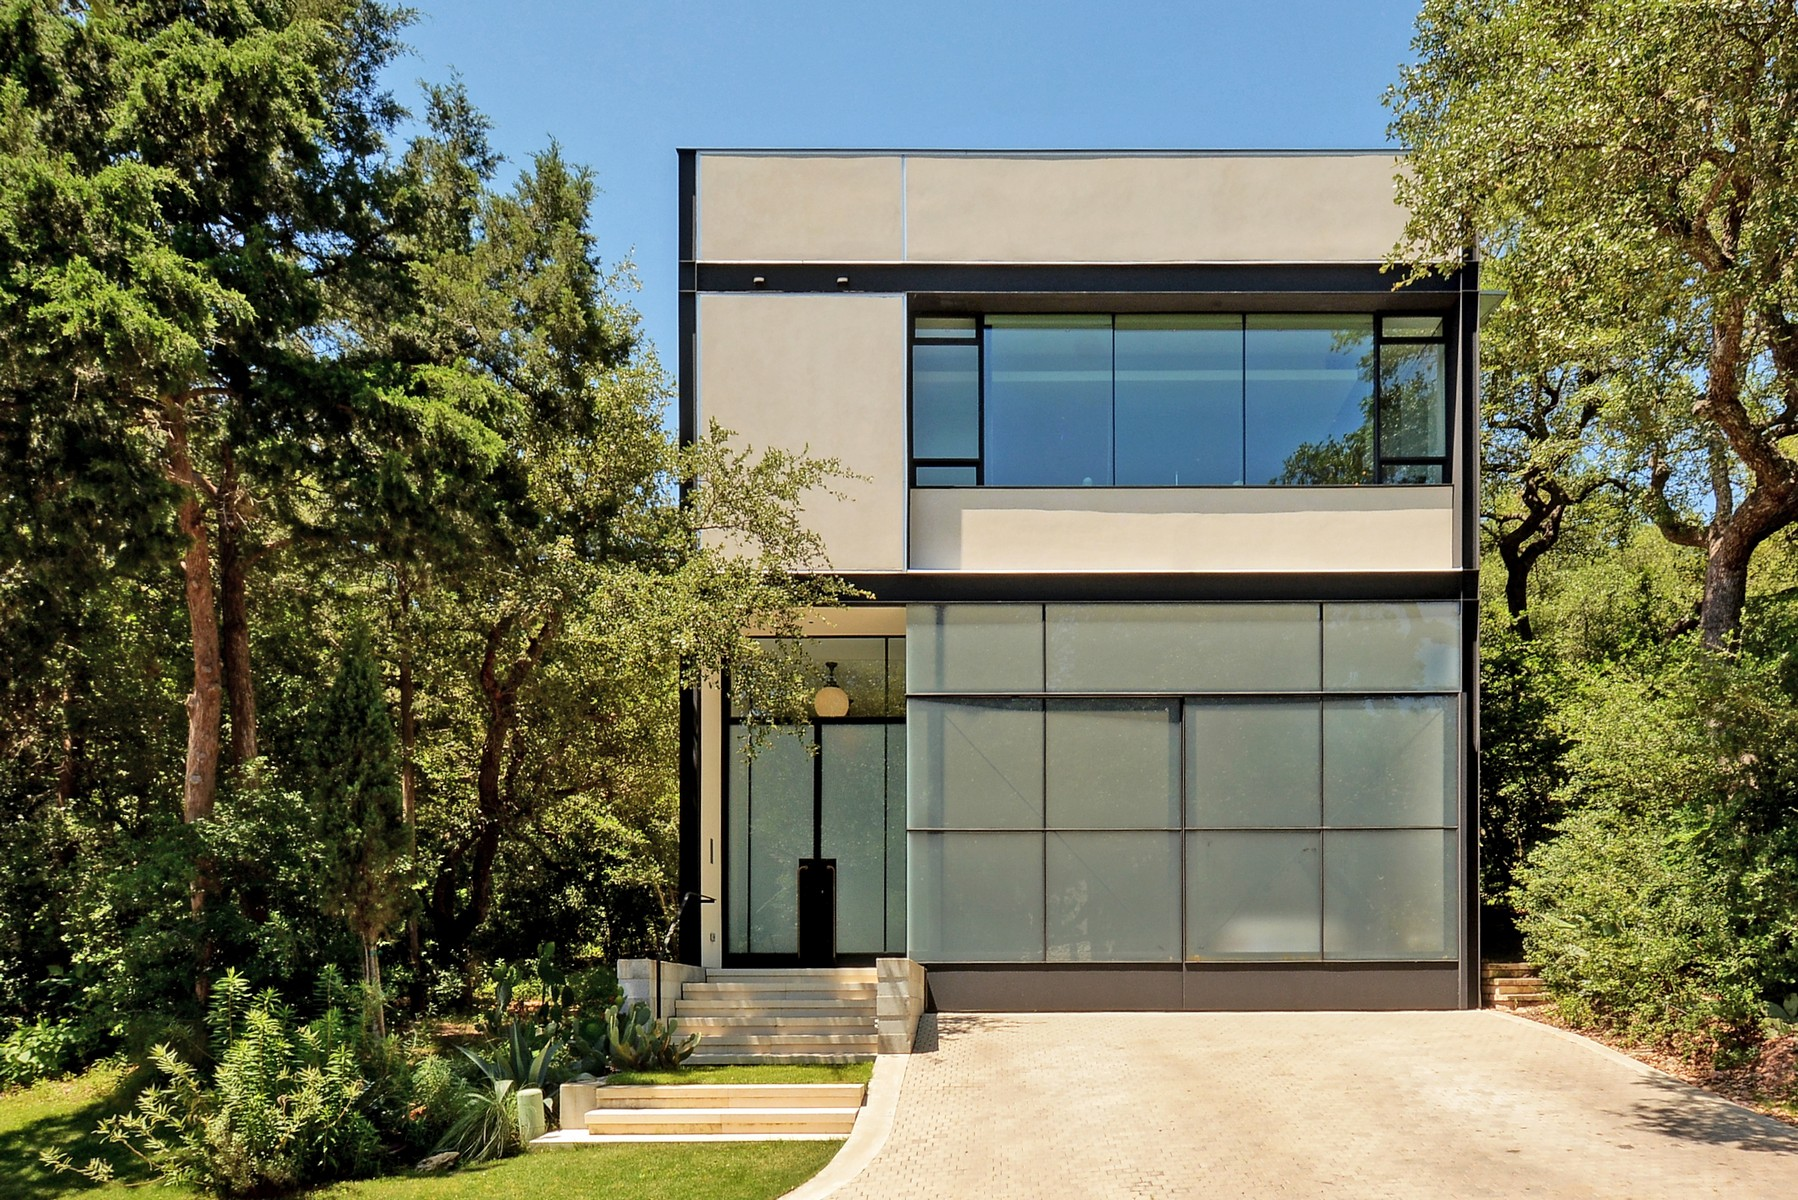 Single Family Home for Sale at Unique Modern Home Built by NYC Architect 2008 Rue De St Tropez Austin, Texas 78746 United States